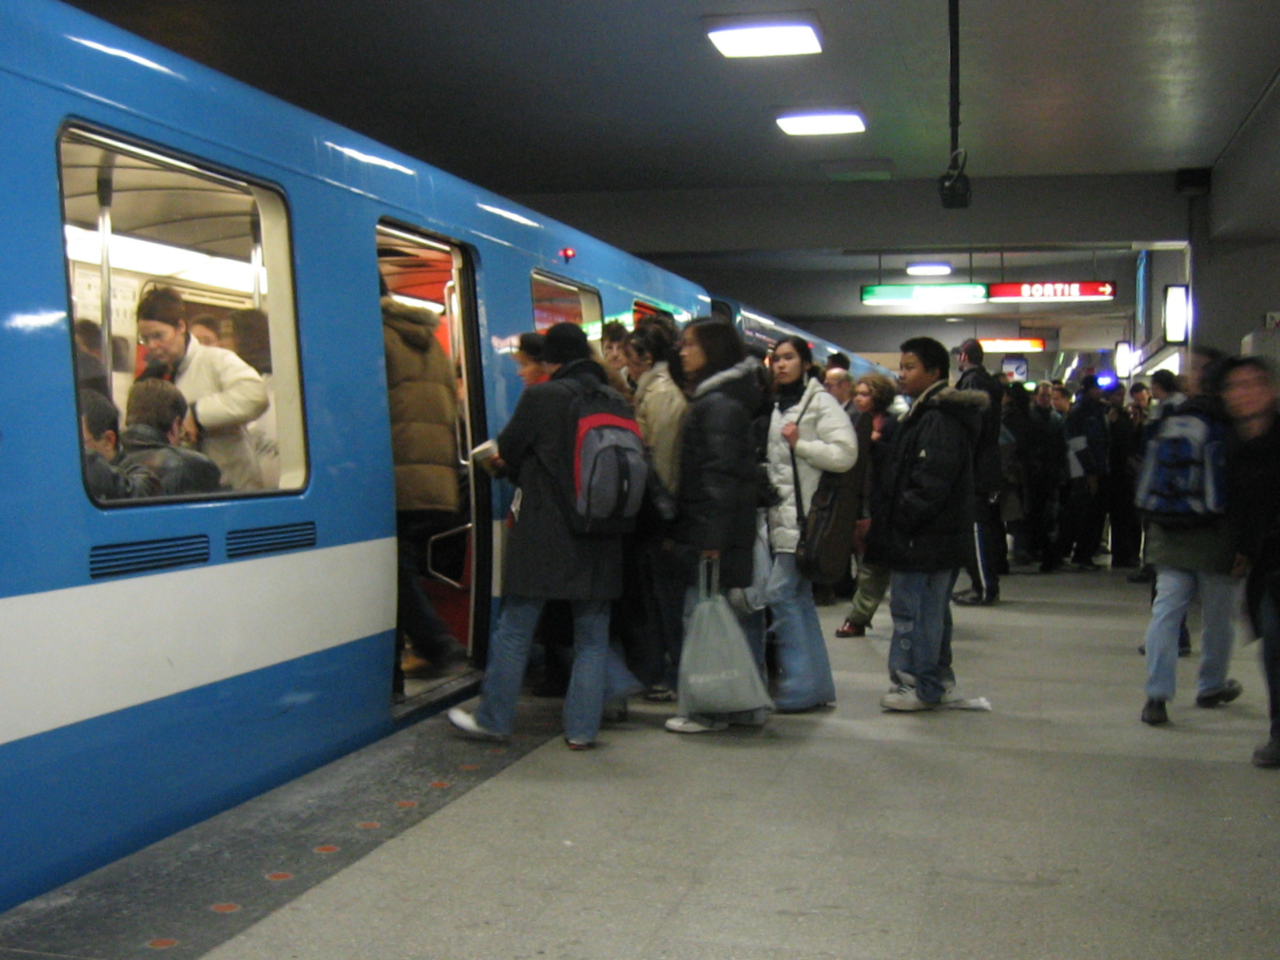 Montreal Metro image from Wikimedia Commons